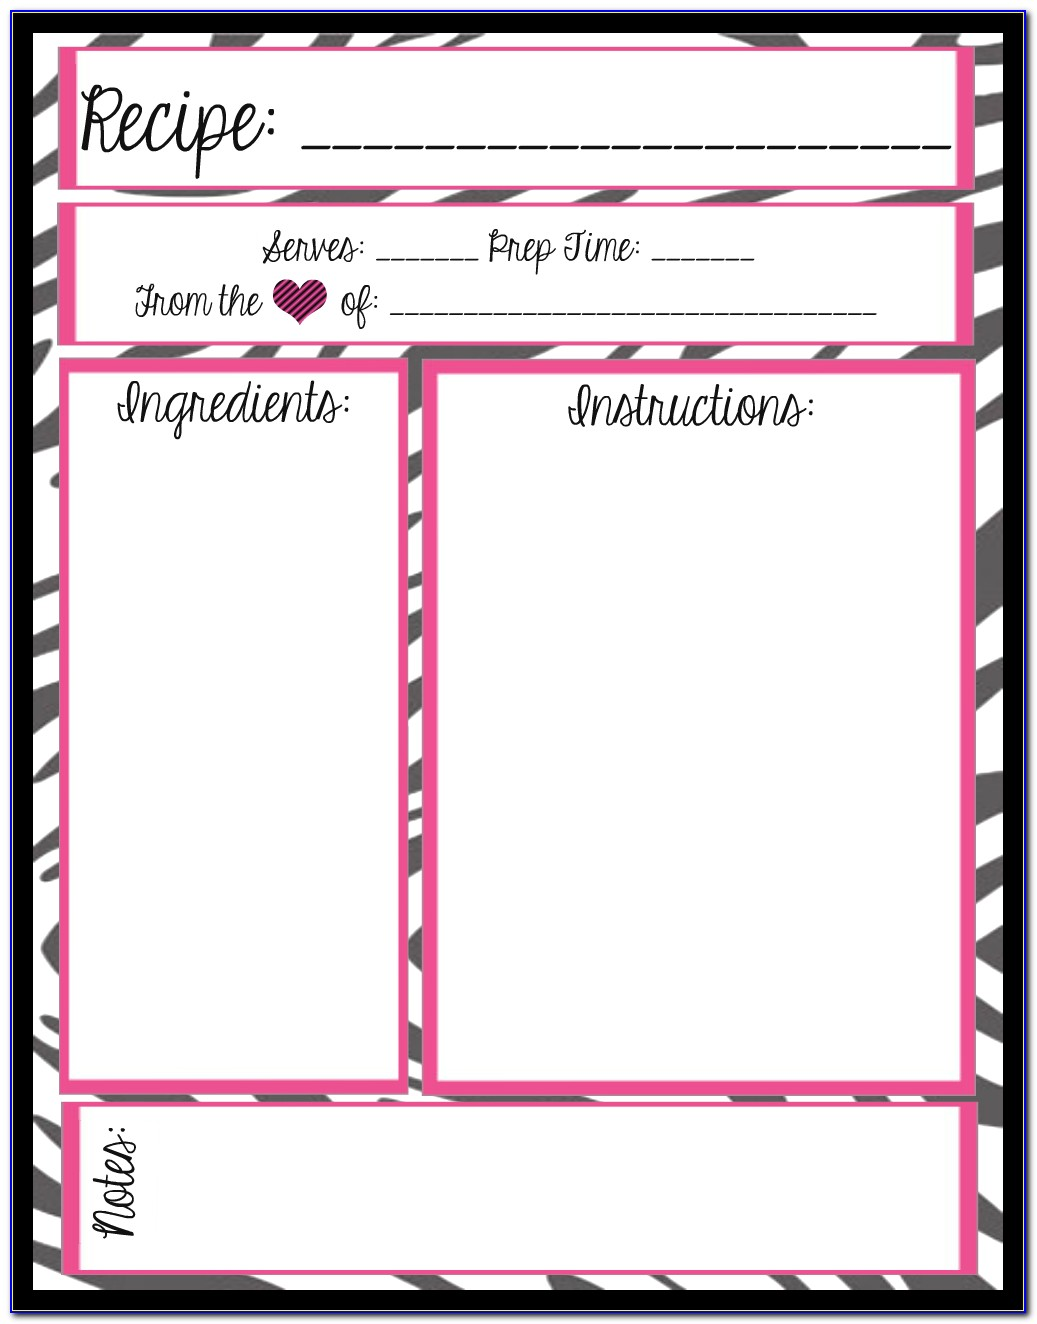 Blank Recipe Card Template Download